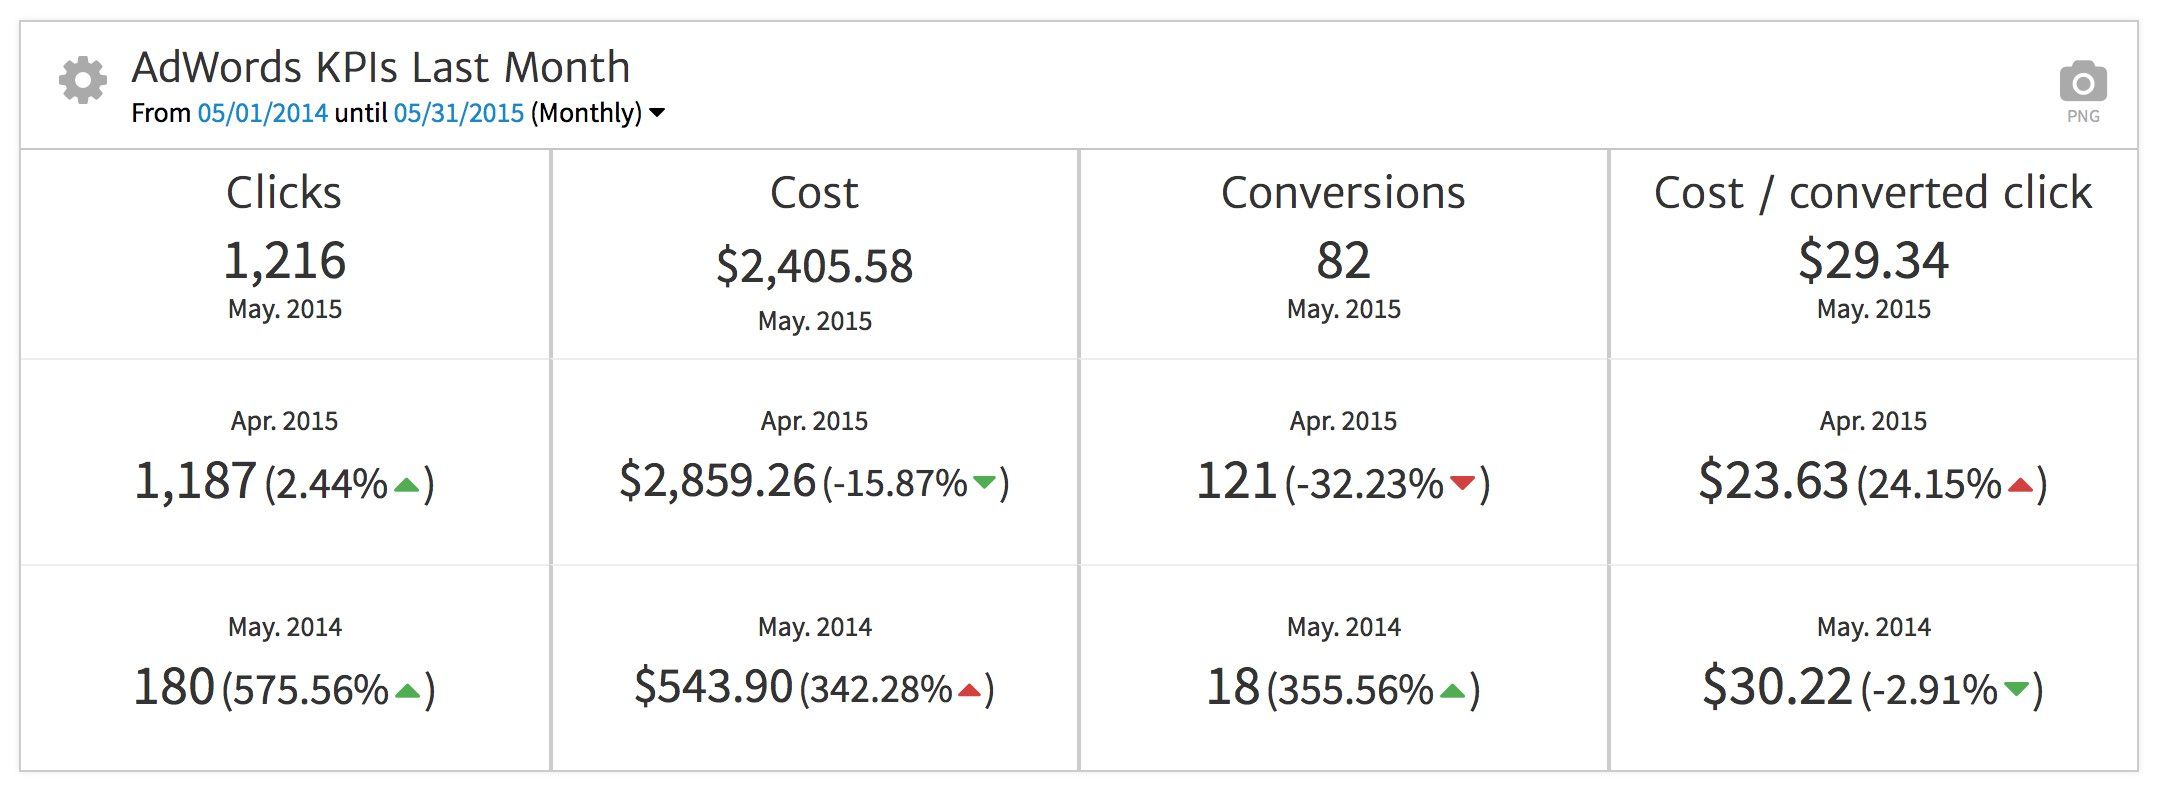 AdWords KPIs in Megalytic after Customization